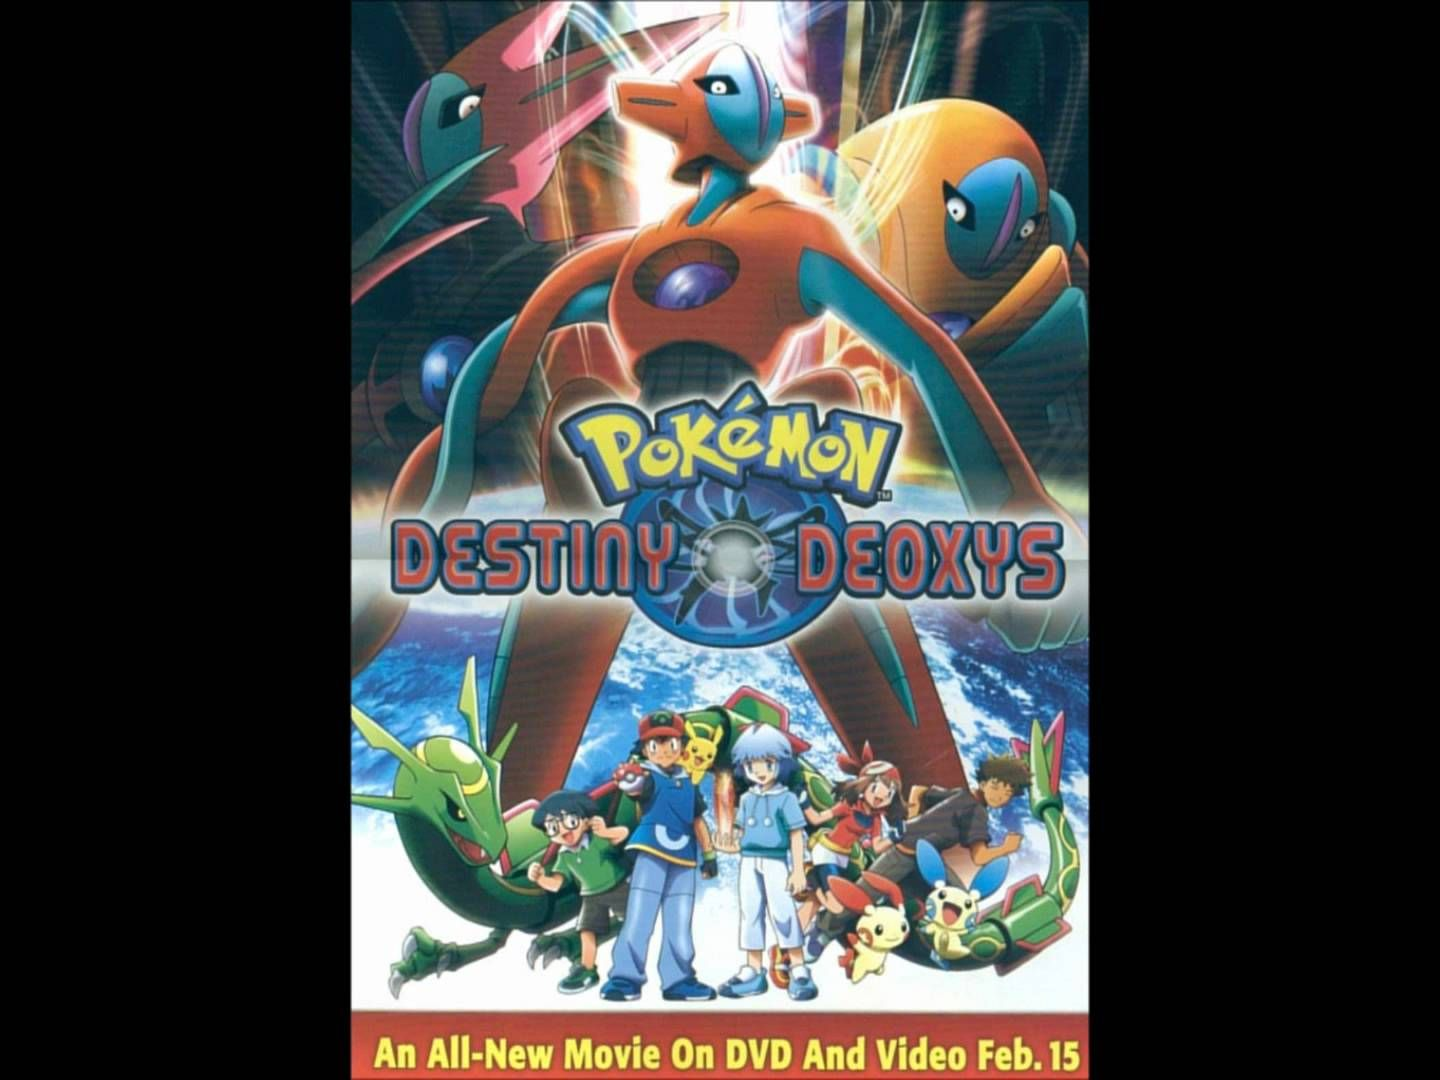 Pokemon Destiny Deoxys This Side Of Paradise By Bree Sharp